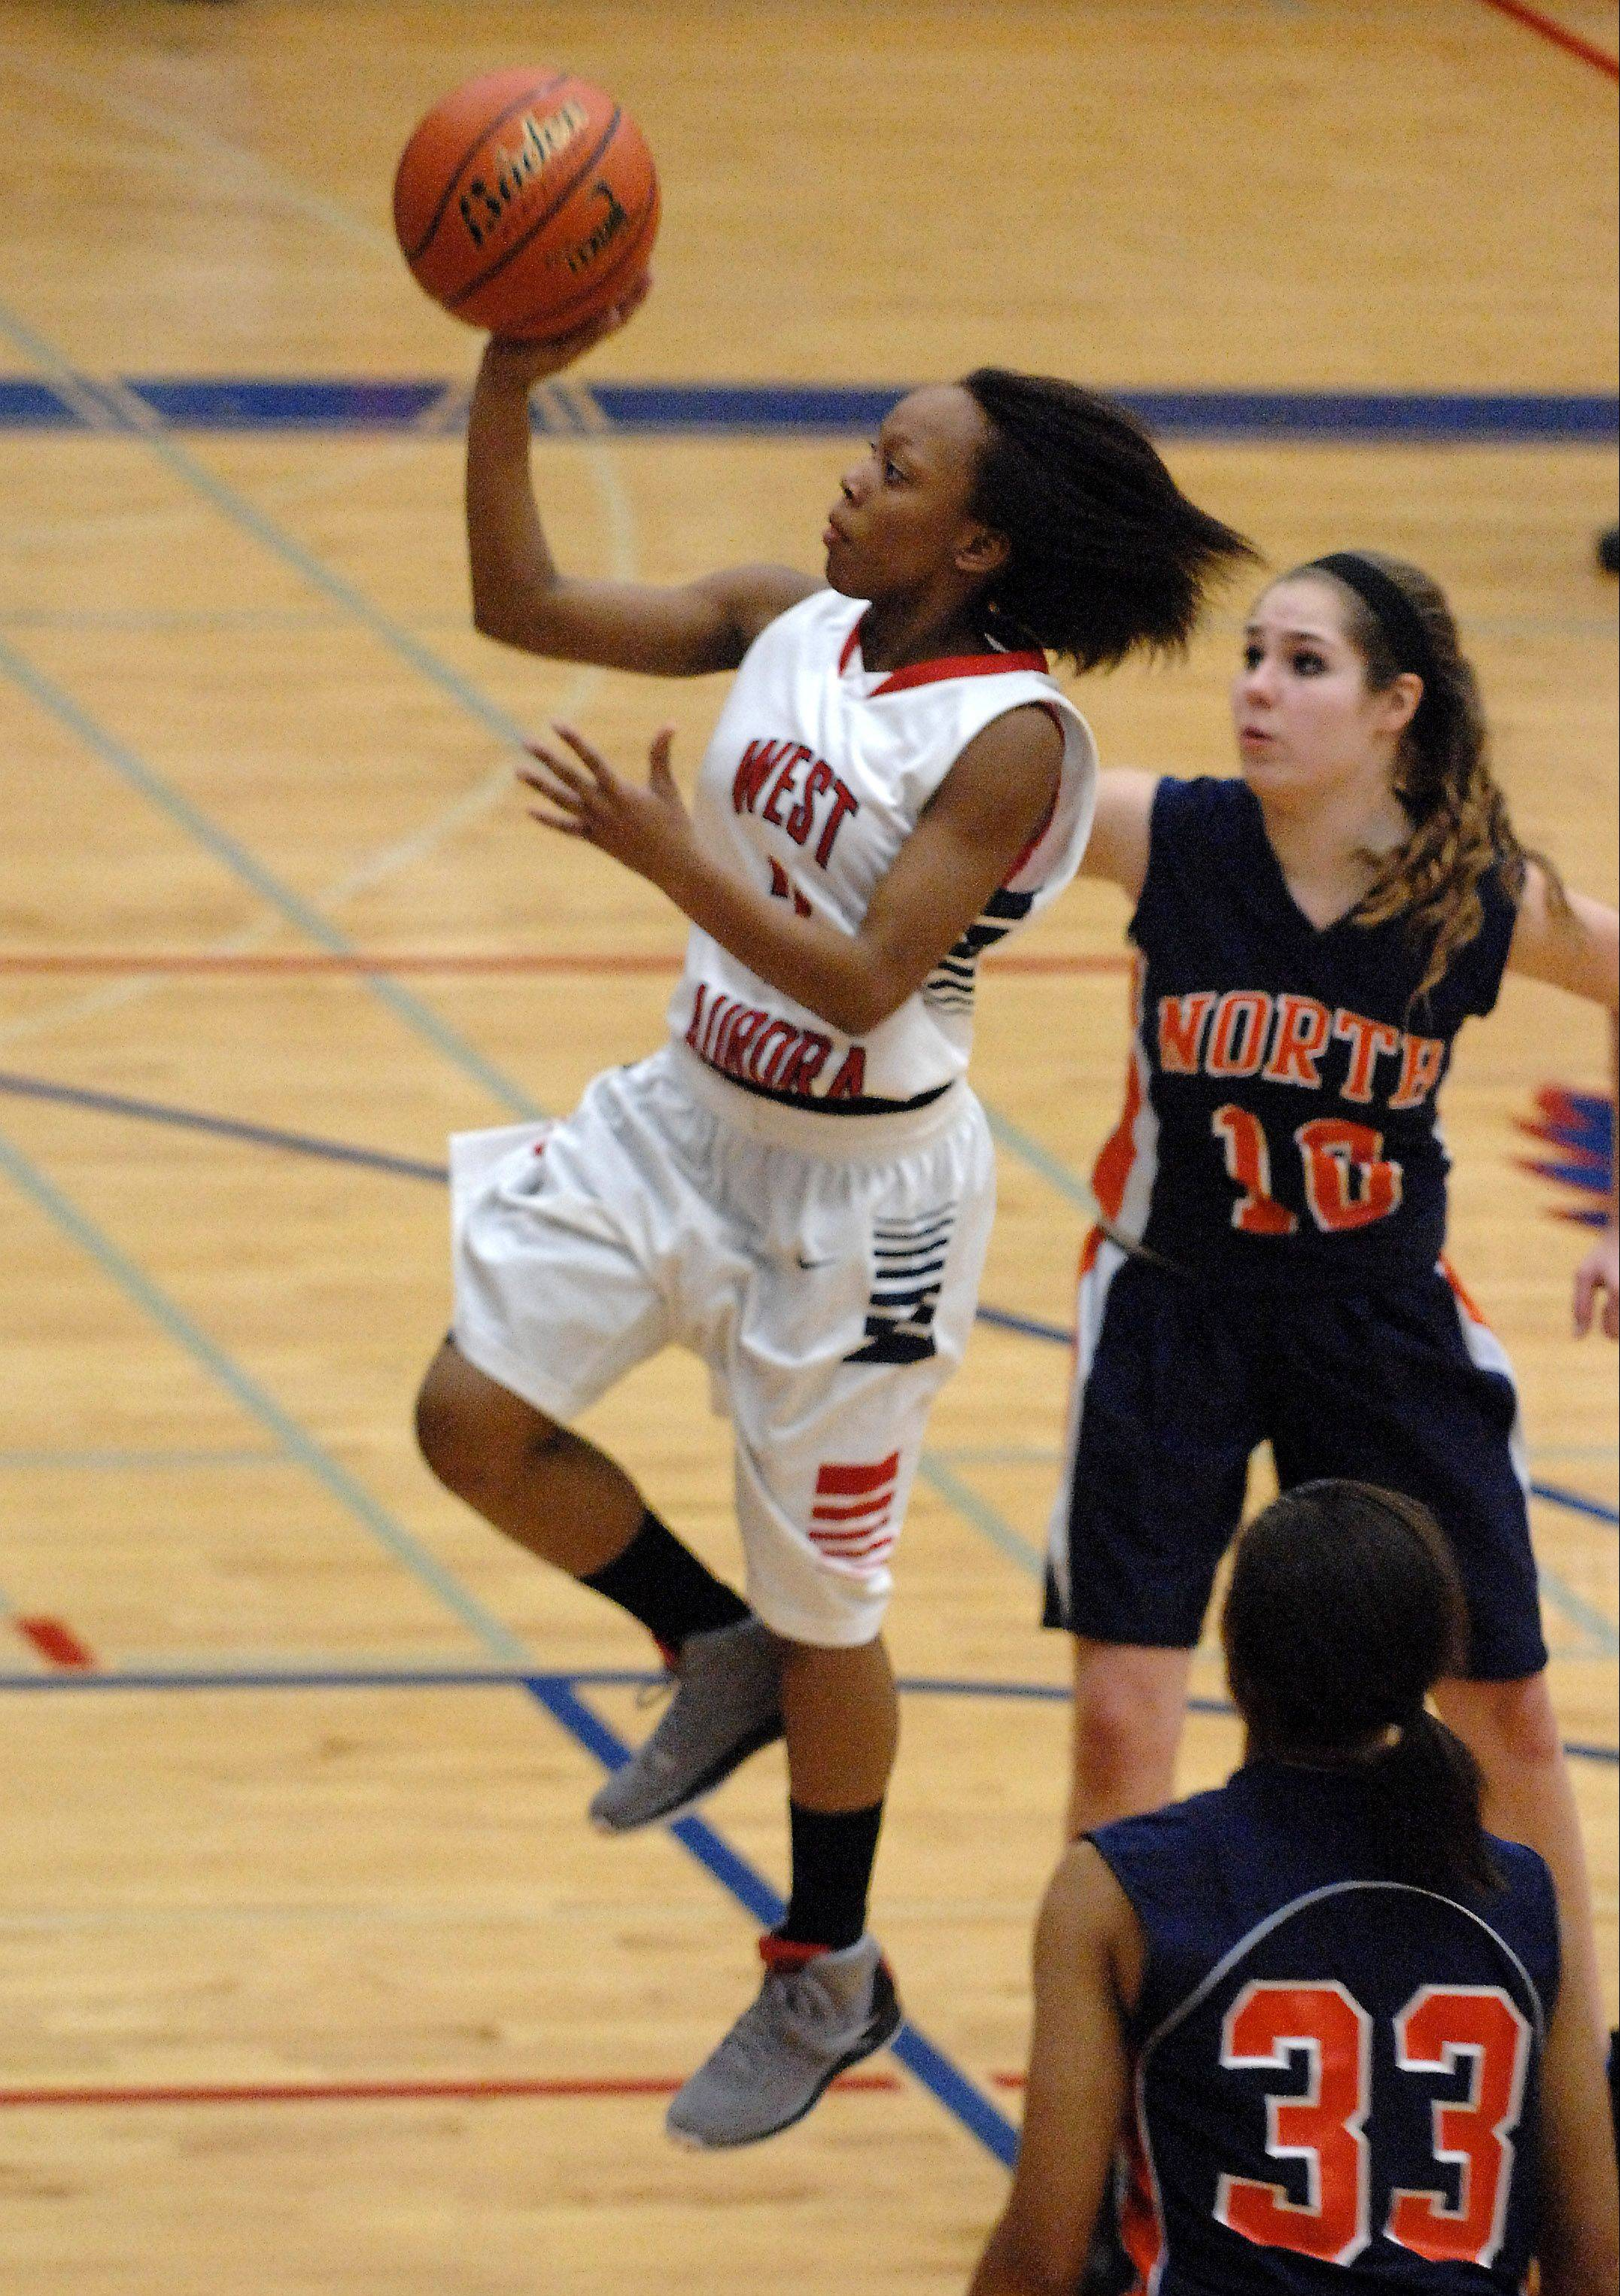 West Aurora's Alexis Wiggins pulls up with a running one-hander against Naperville North during Thursday's game in Aurora.